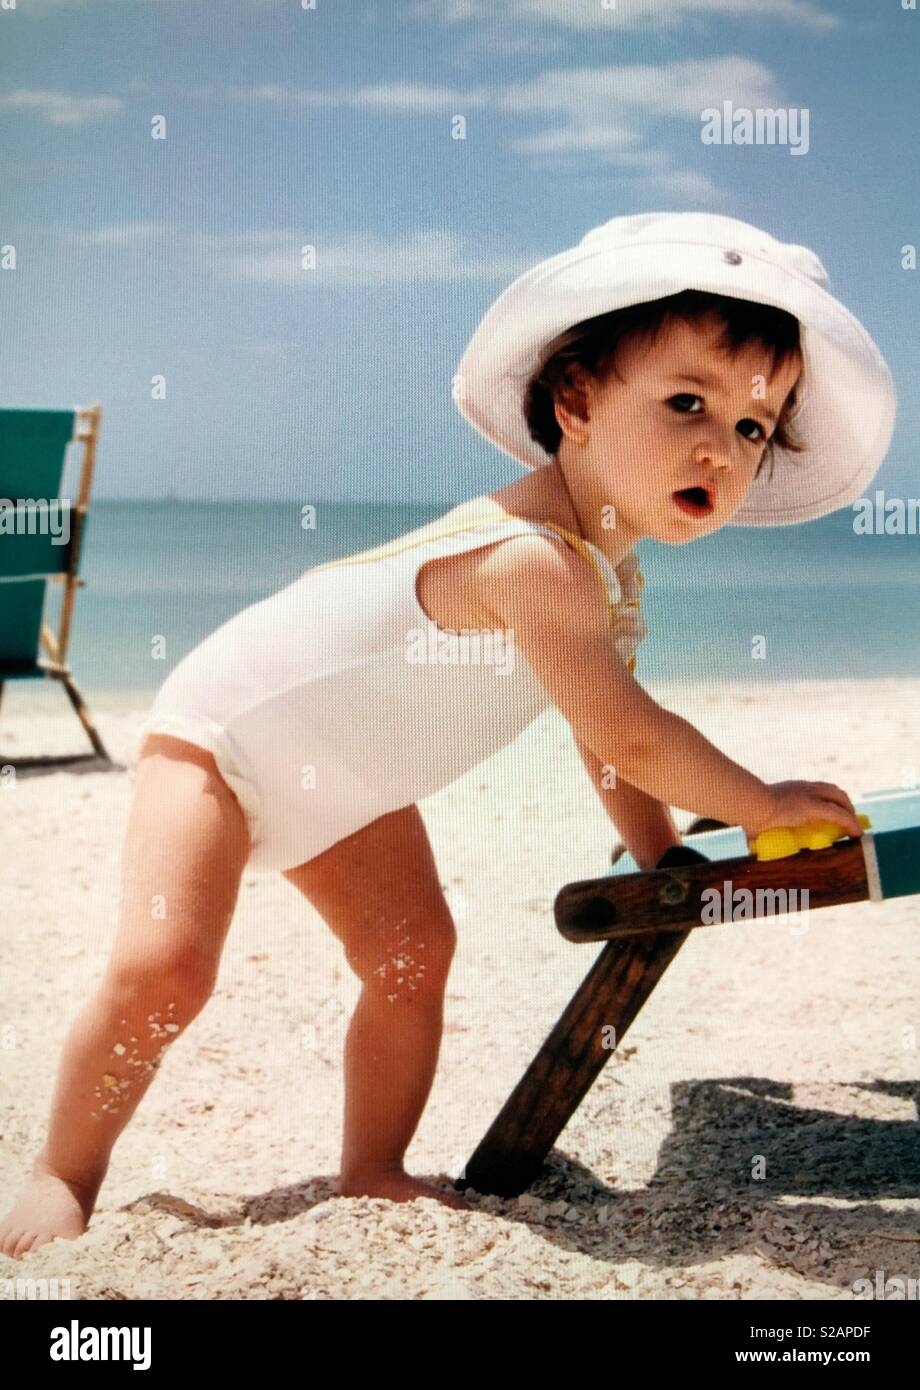 A toddler girl In a white bathing suit and hat plays in the sand on a beach - Stock Image